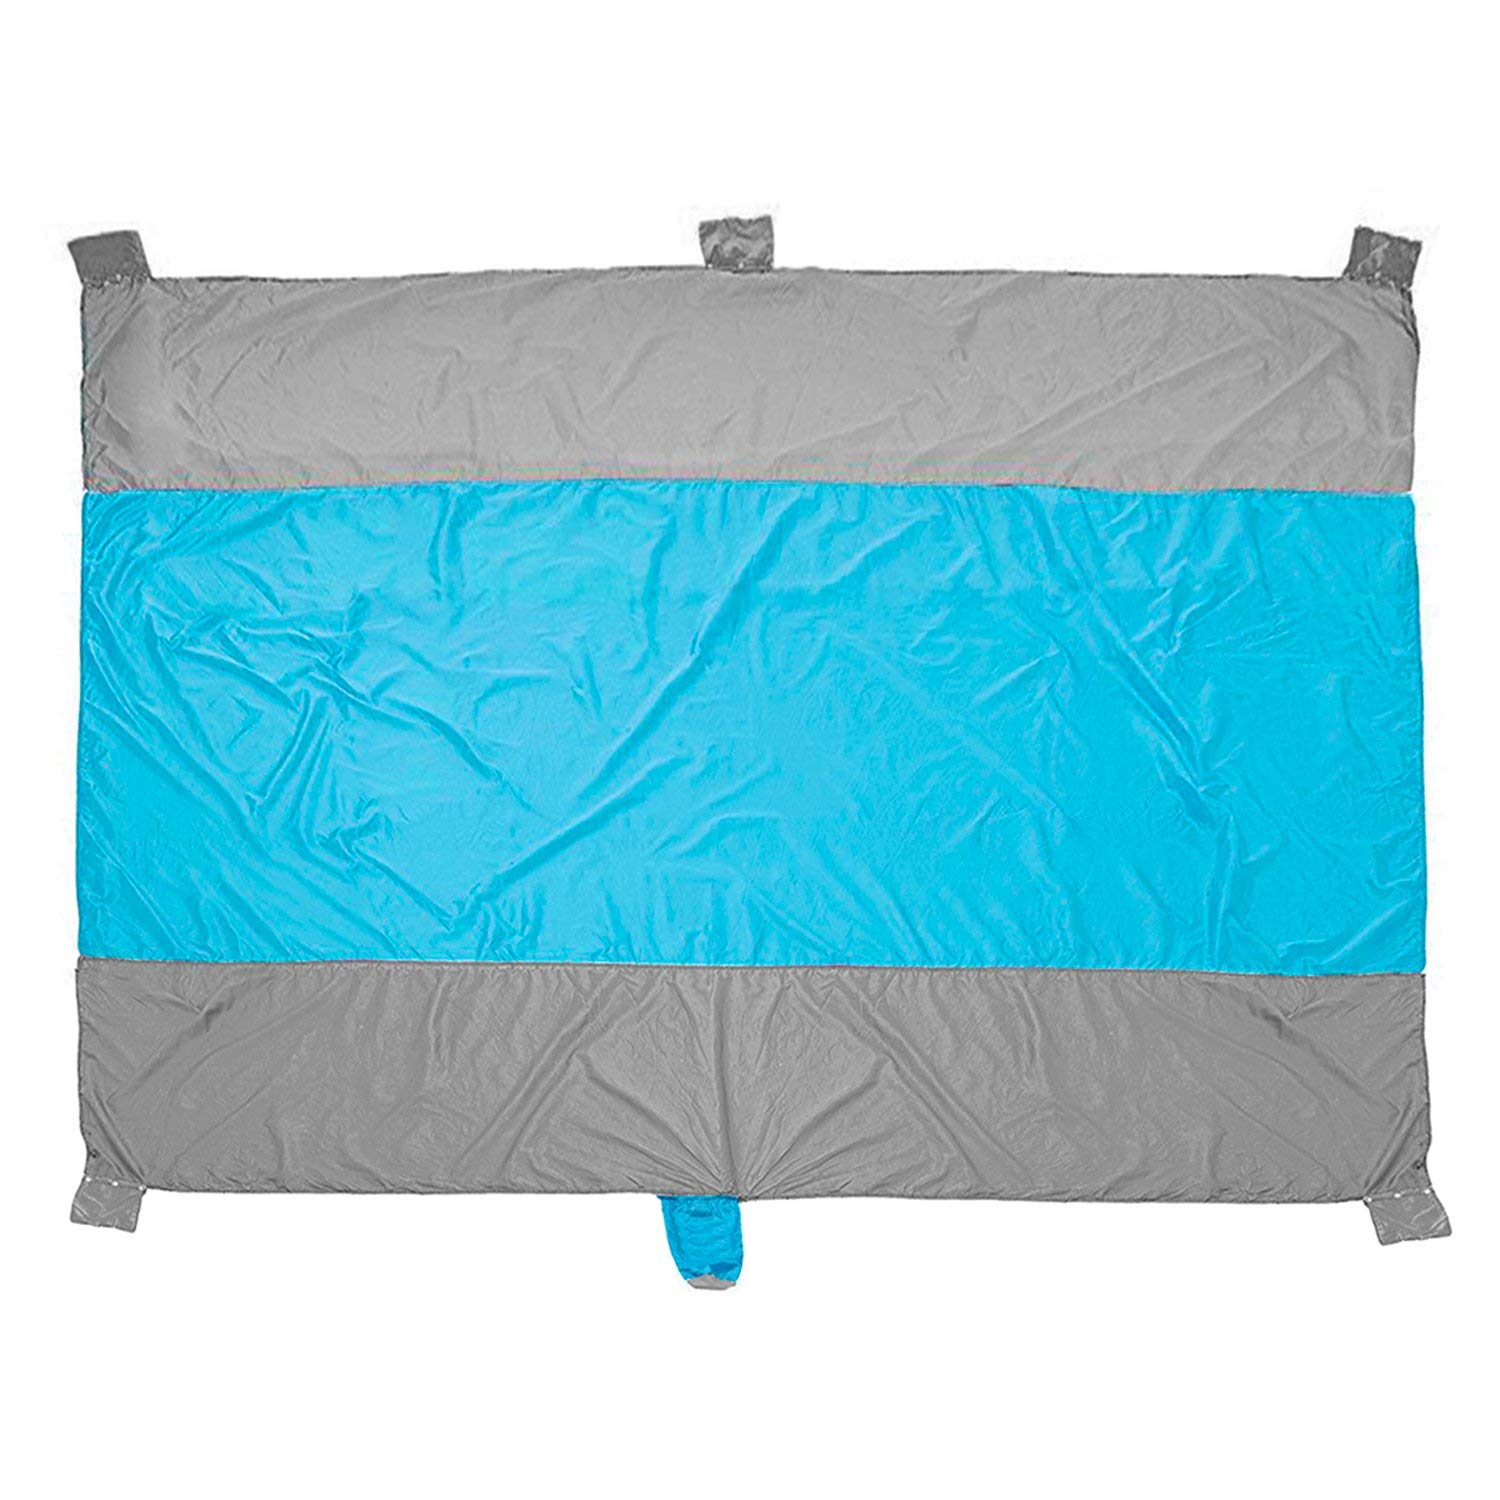 Muuttaa Sand Free & Waterproof Beach Blanket for Outdoor Camping, Festival, or Picnic | Portable Oversized Blue Mat